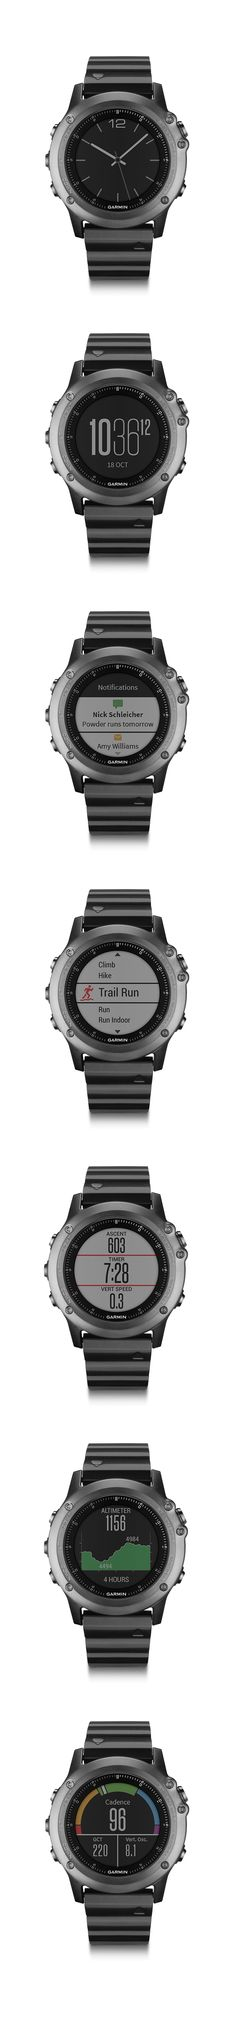 Fenix 3 Sapphire. World's first adventure sport training Garmin GPS/GLONASS watch. #Fenix3